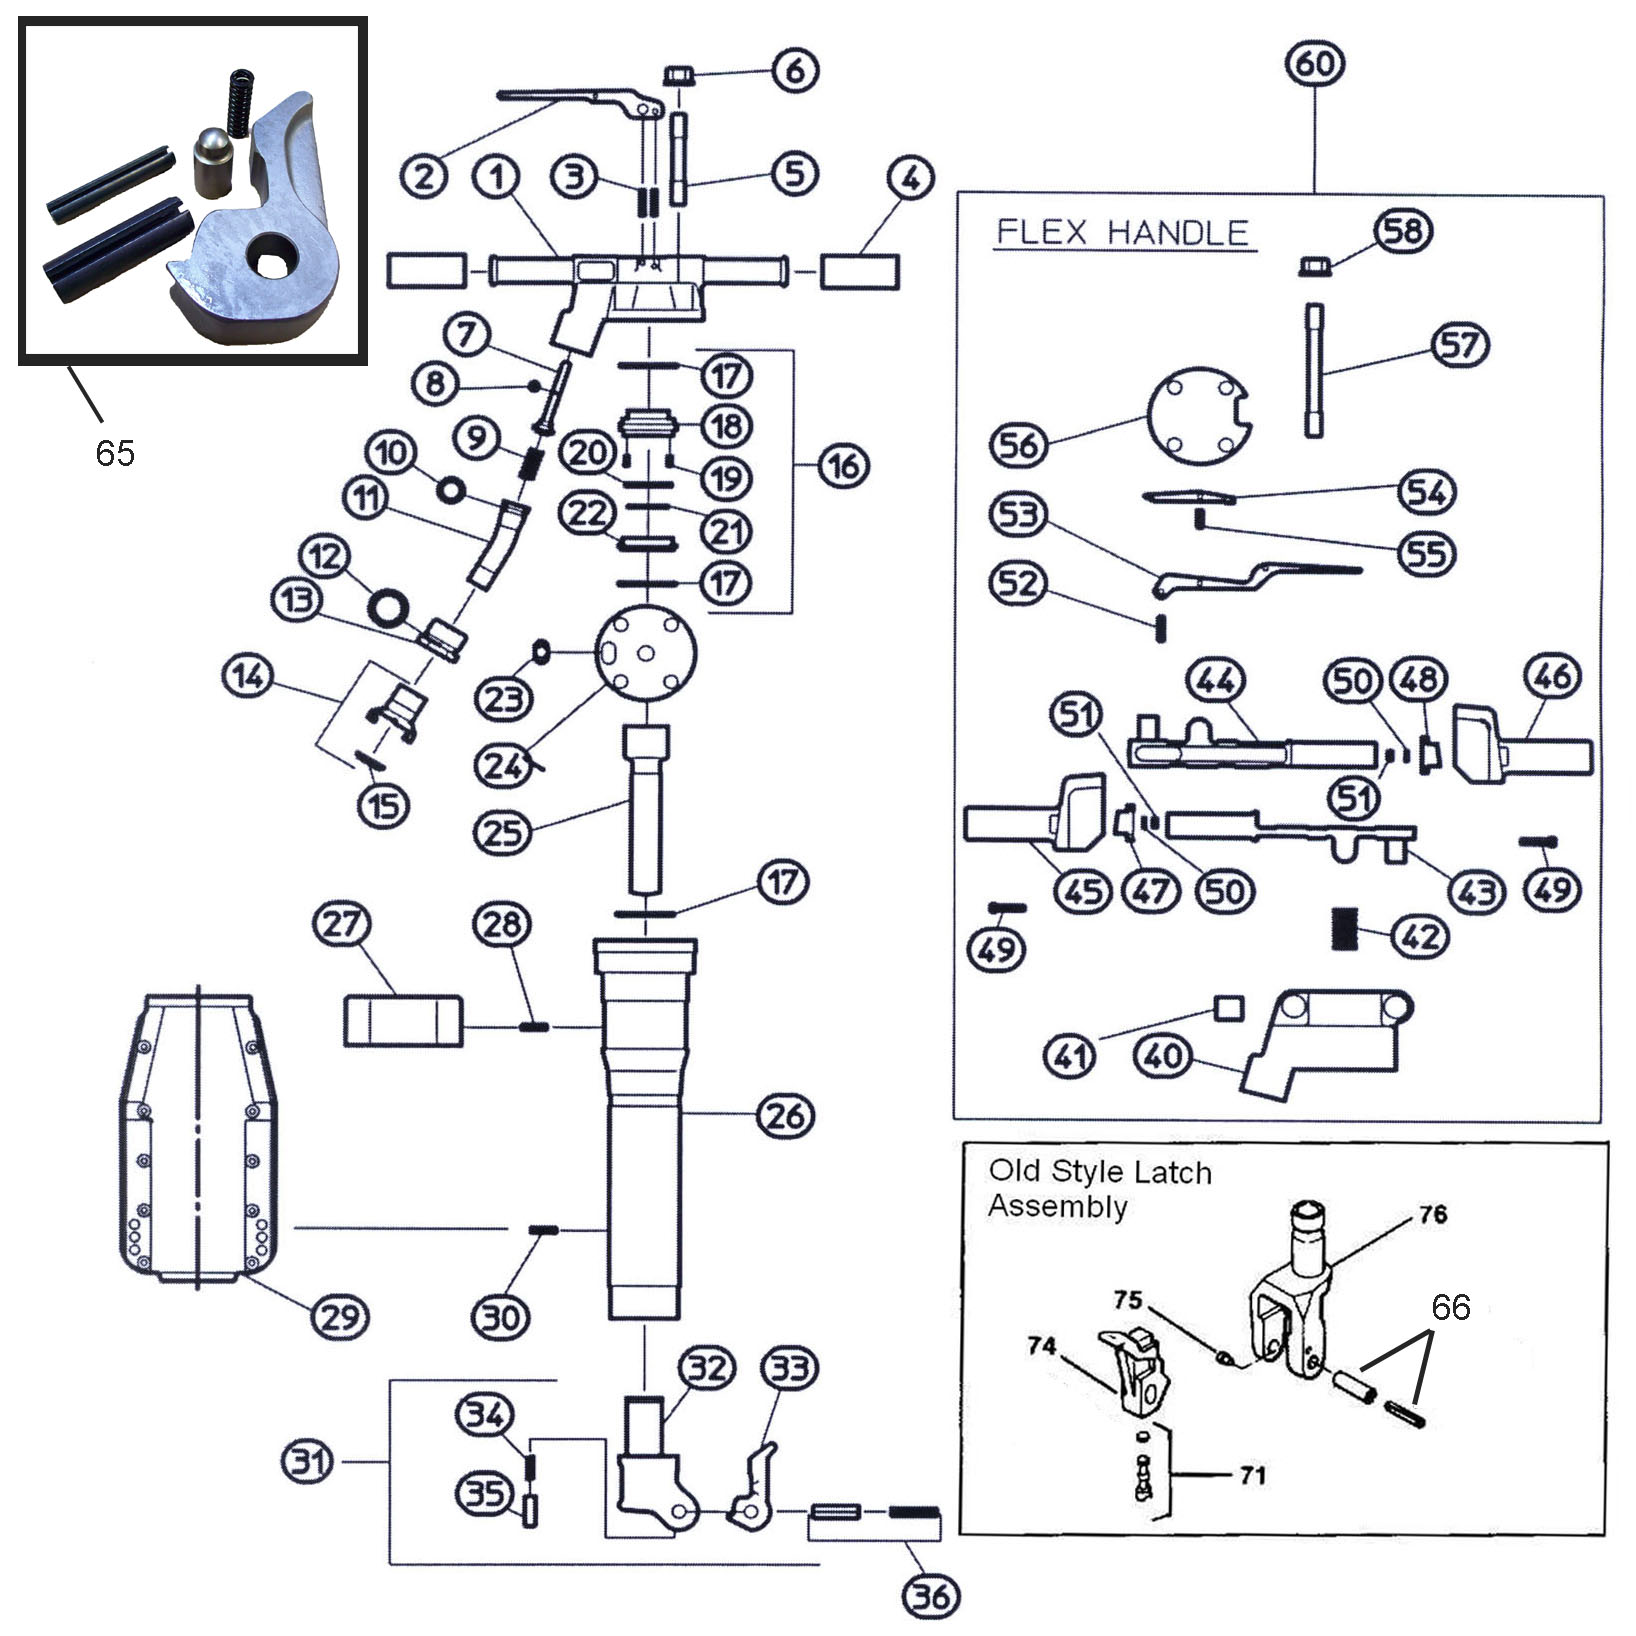 1991 rx7 engine diagram html